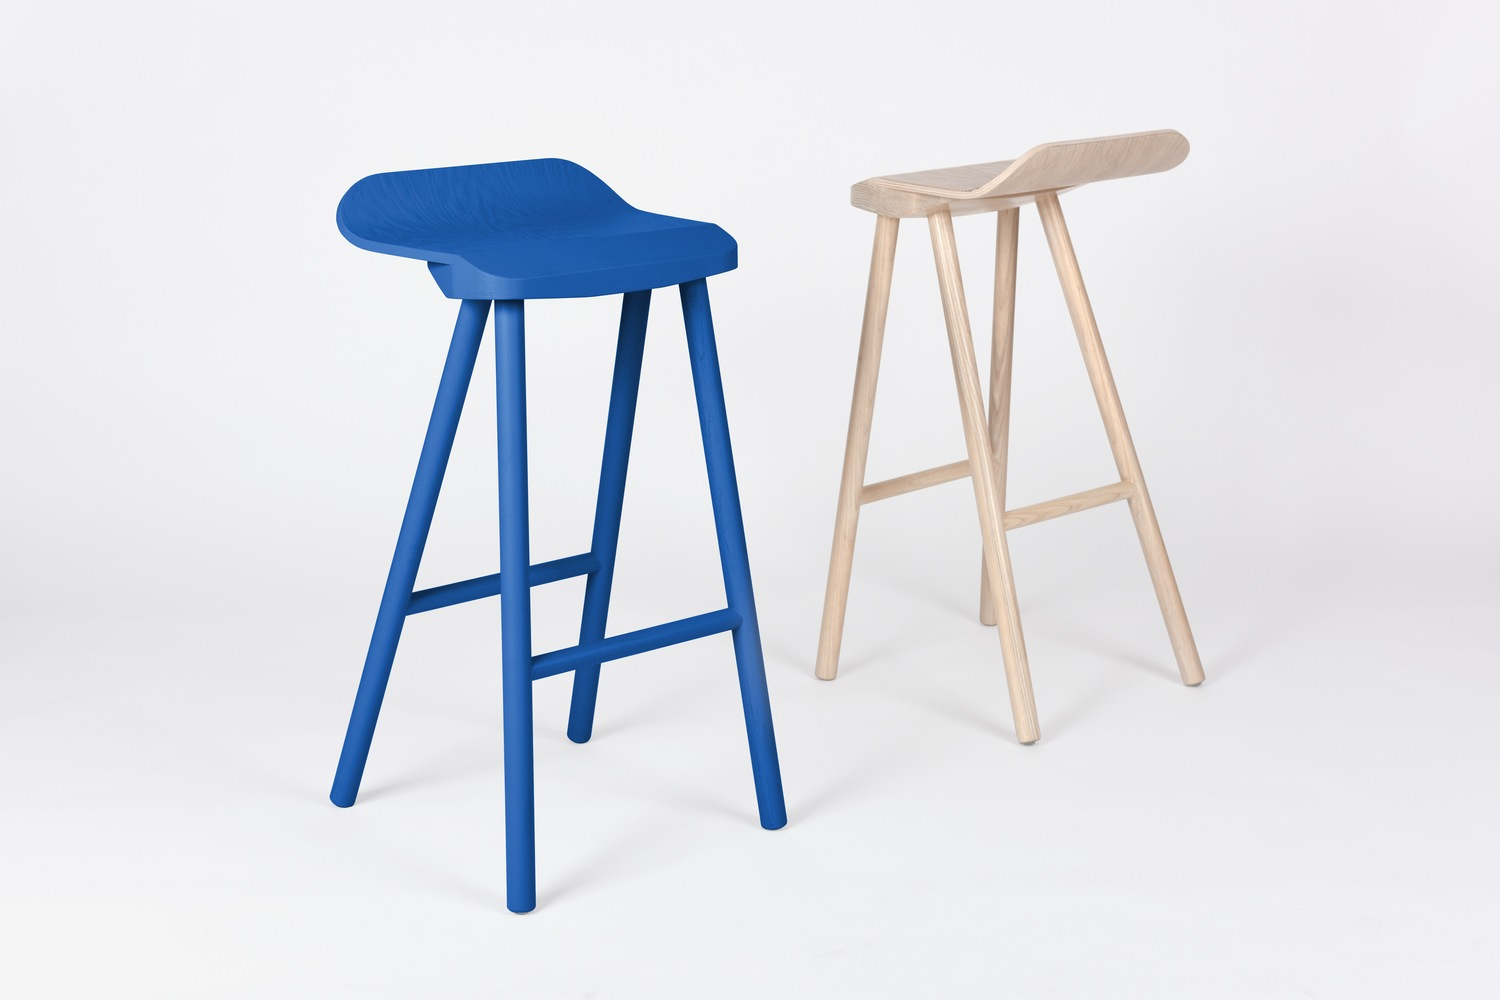 SPRING Stools by Andrew Cheng